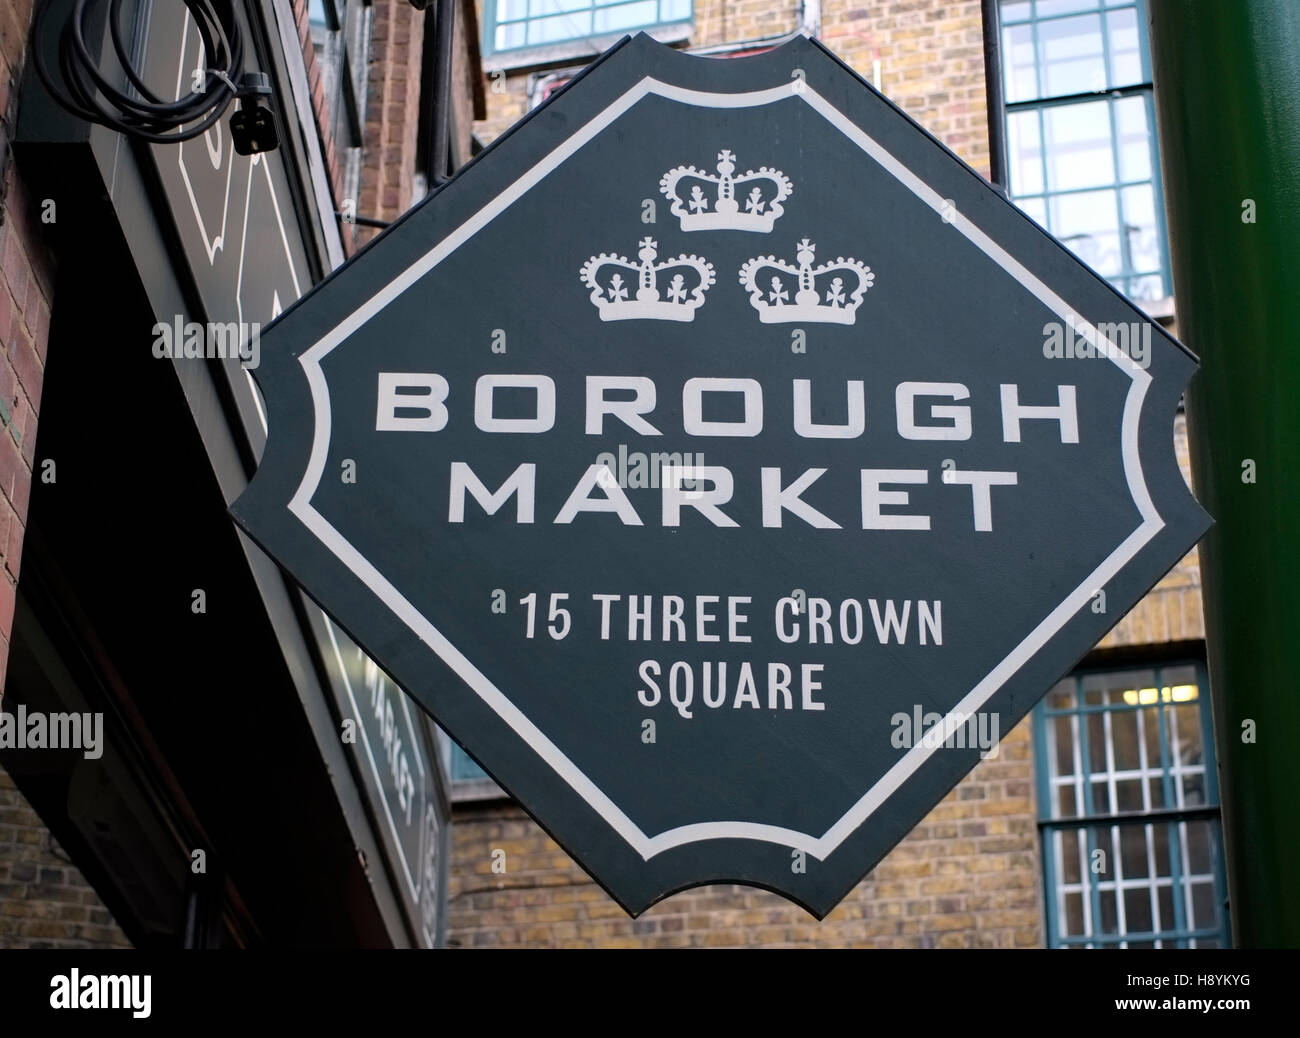 A sign is seen in Borough Market, London, Britain November 16, 2016. © John Voos - Stock Image